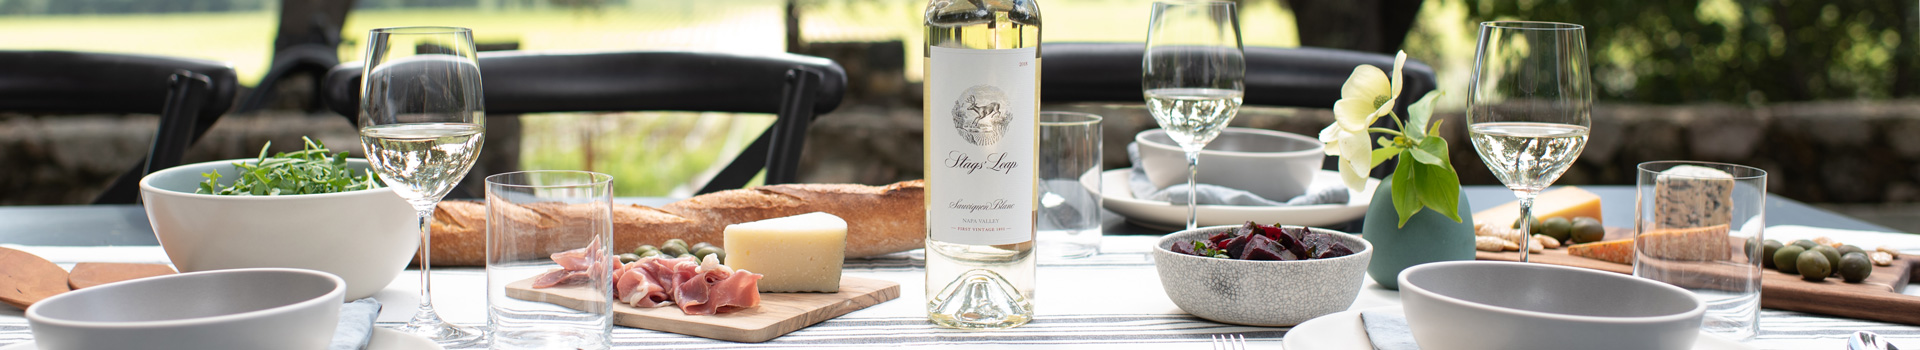 Stags' Leap Napa Valley Sauvignon Blanc Paired with Food